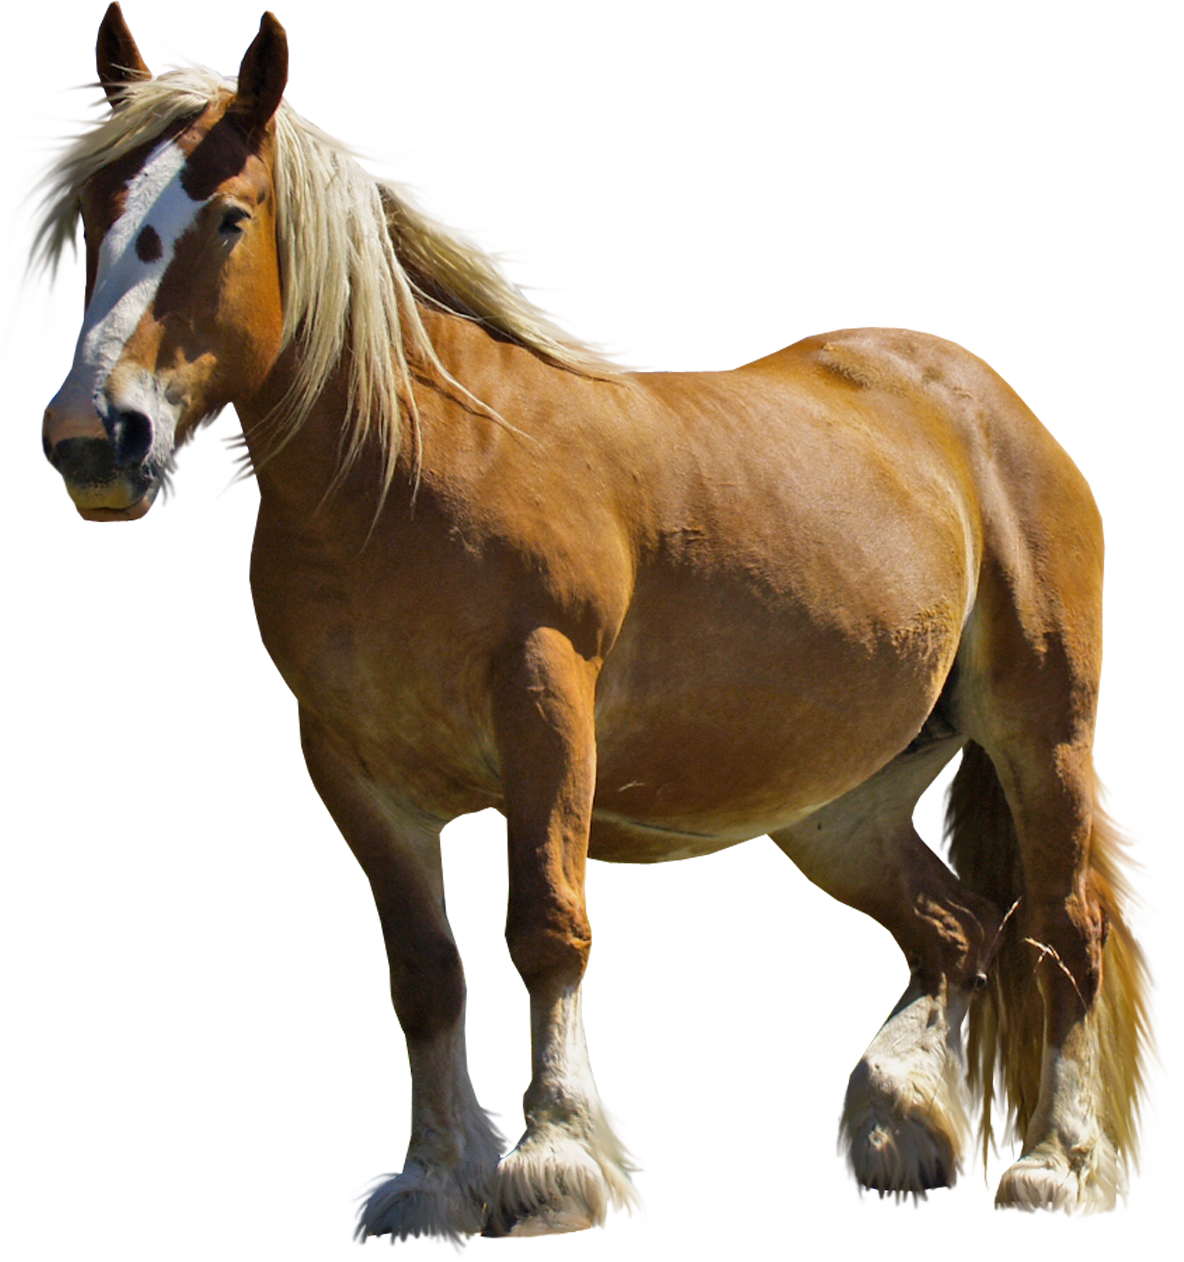 Clipart horse standing. Png images free download